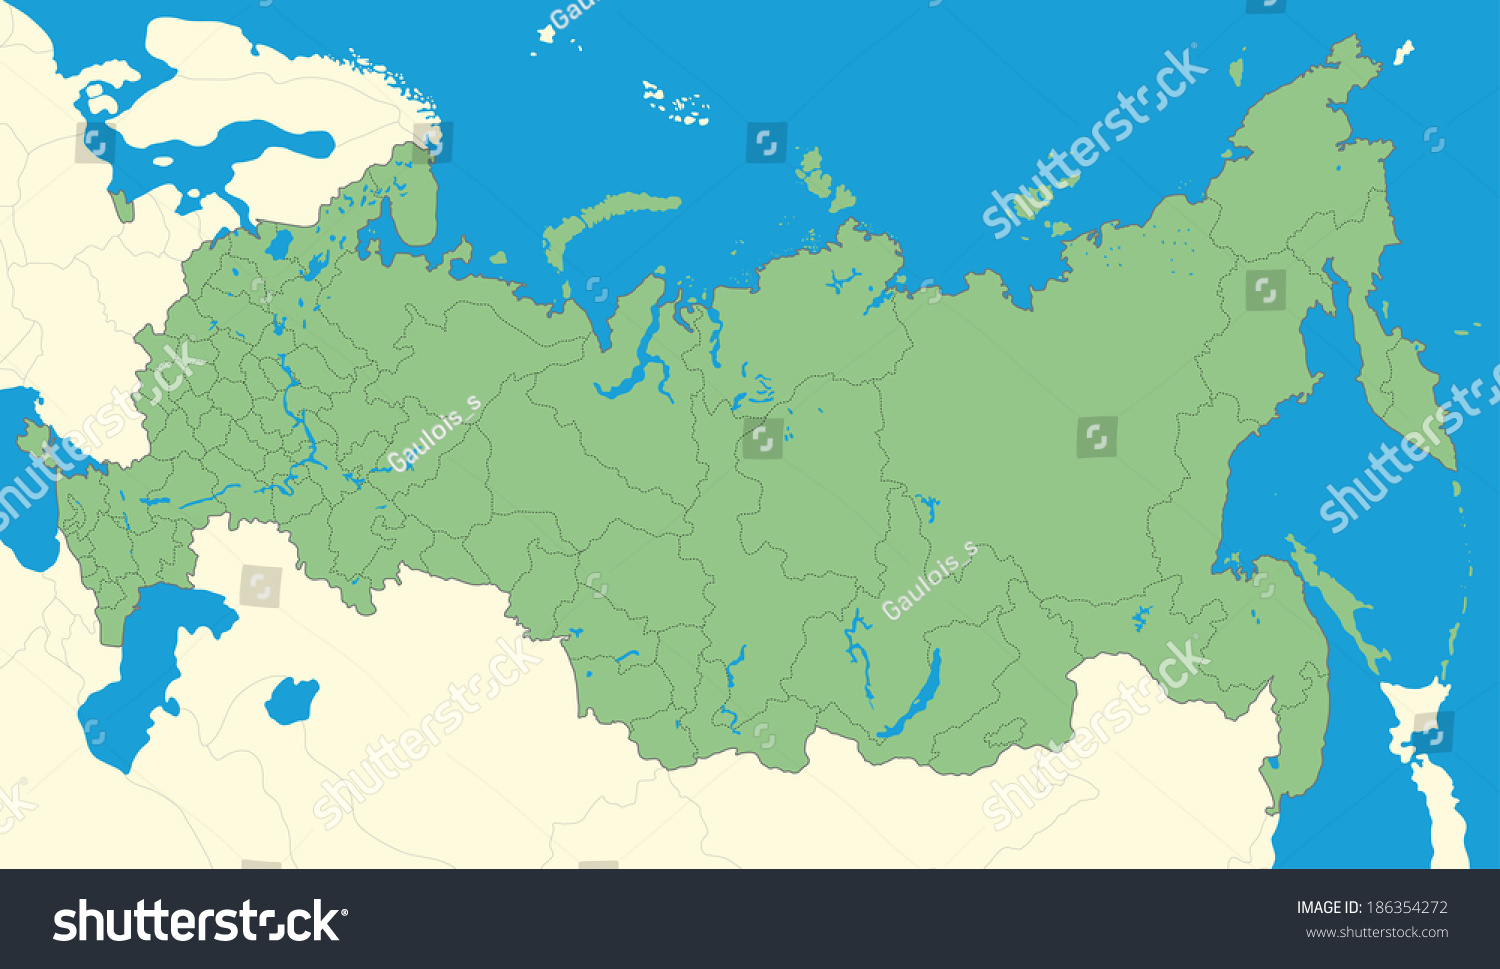 Detailed Map Russia Stock Illustration Shutterstock - Detailed map of russia